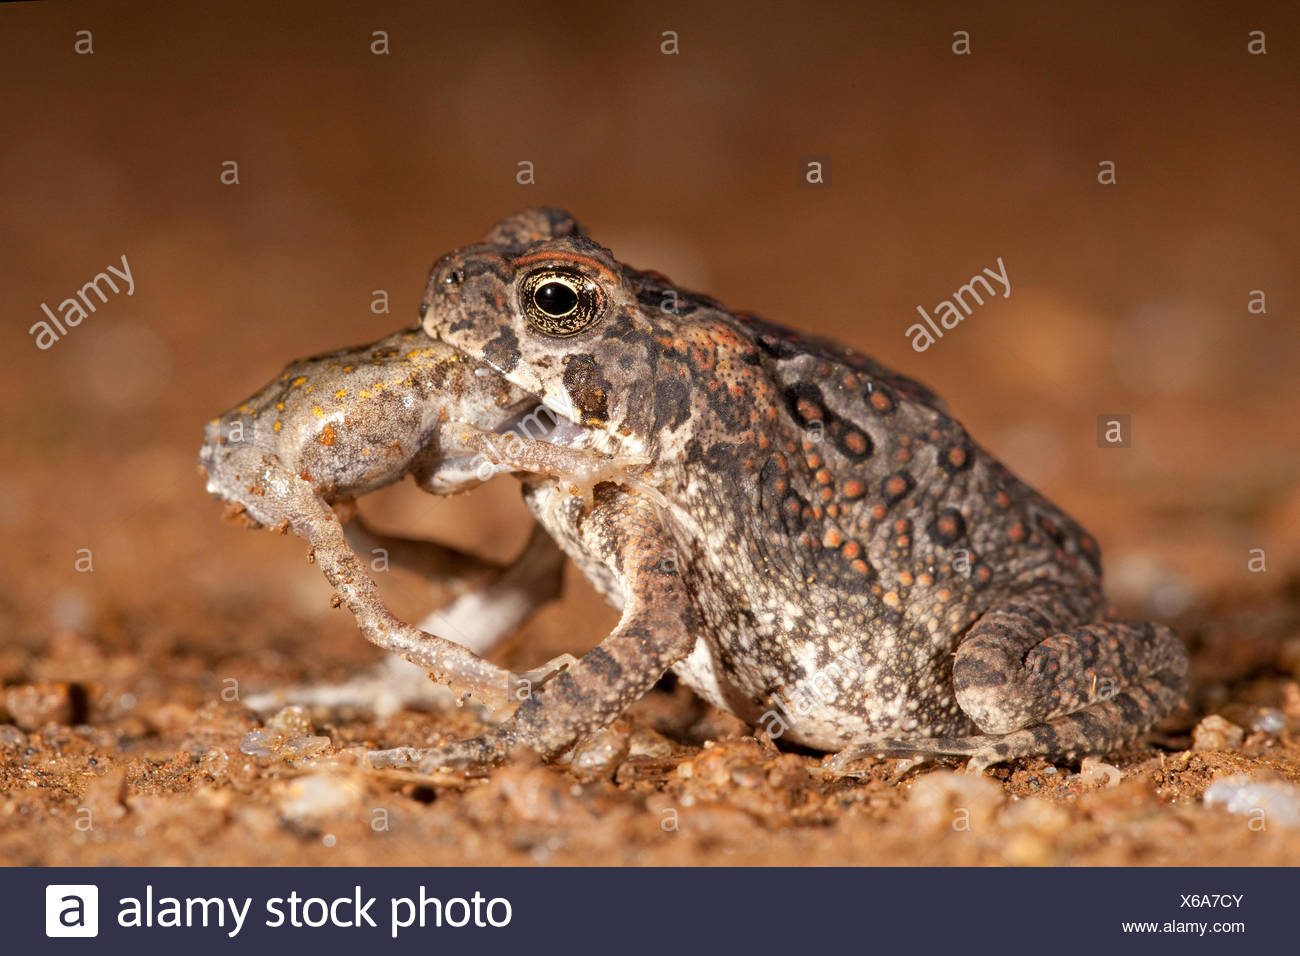 photo of a cane toad eating another juvenile cane toad - Stock Image